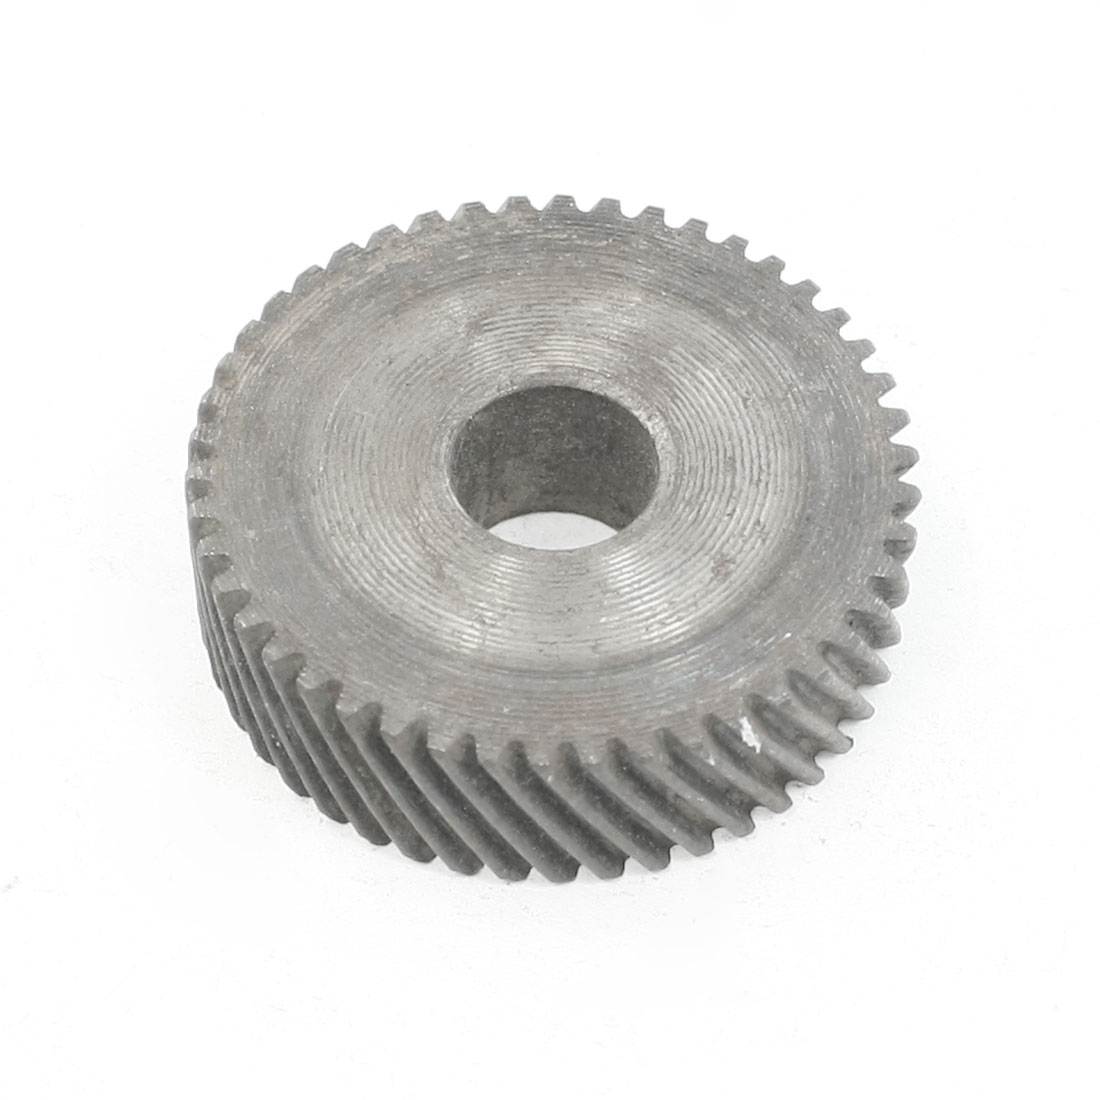 Electric Power Tool Spare Part Helical Gear Wheel for Makita 5806 Circular Saw